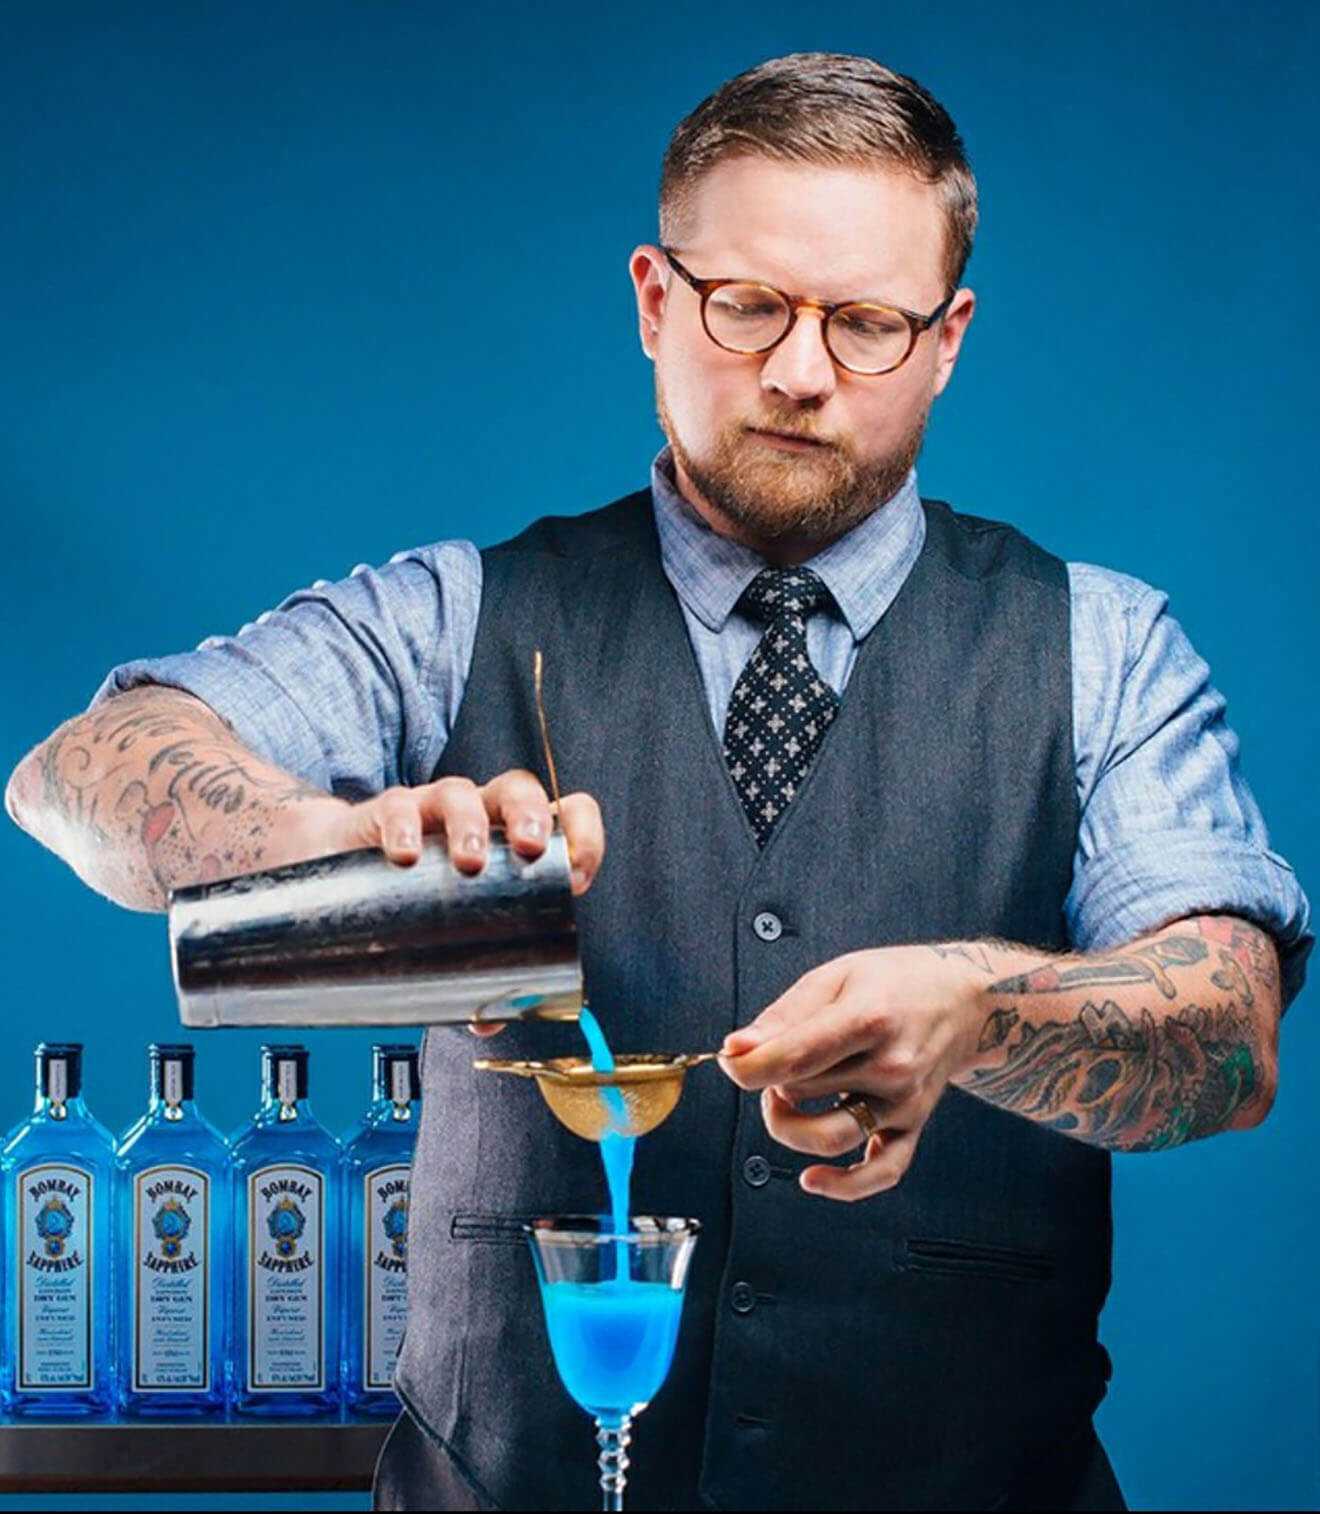 Houston Bartender Chris Morris Mixing Behind the Stick, portrait